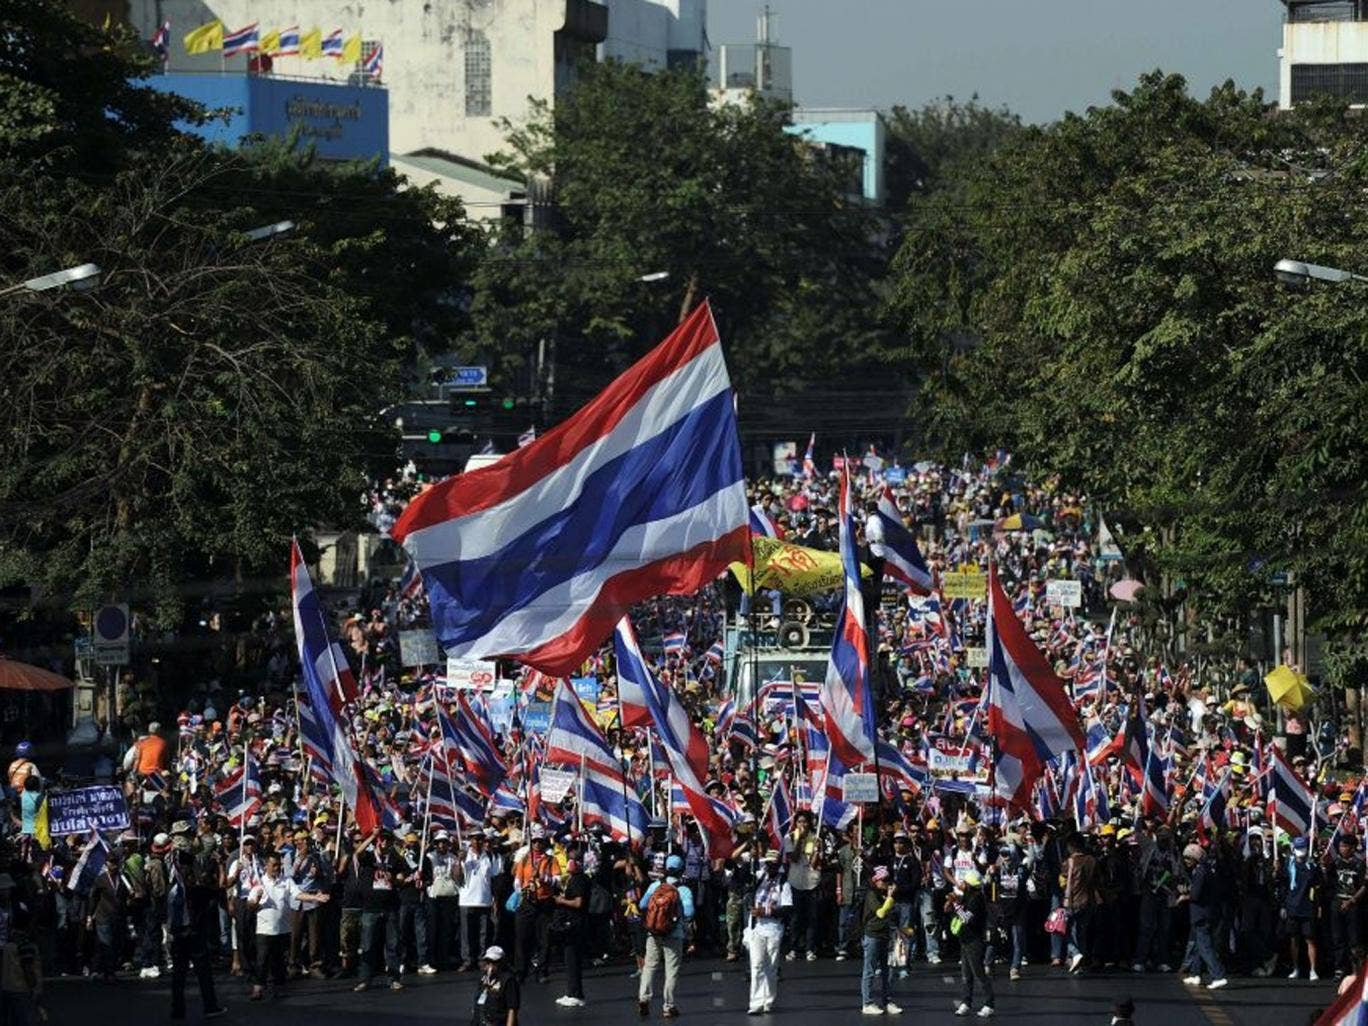 Thai anti-government protesters wave national flags as they march through the streets of Bangkok in a move to 'shut down' the city on 13 January 2014